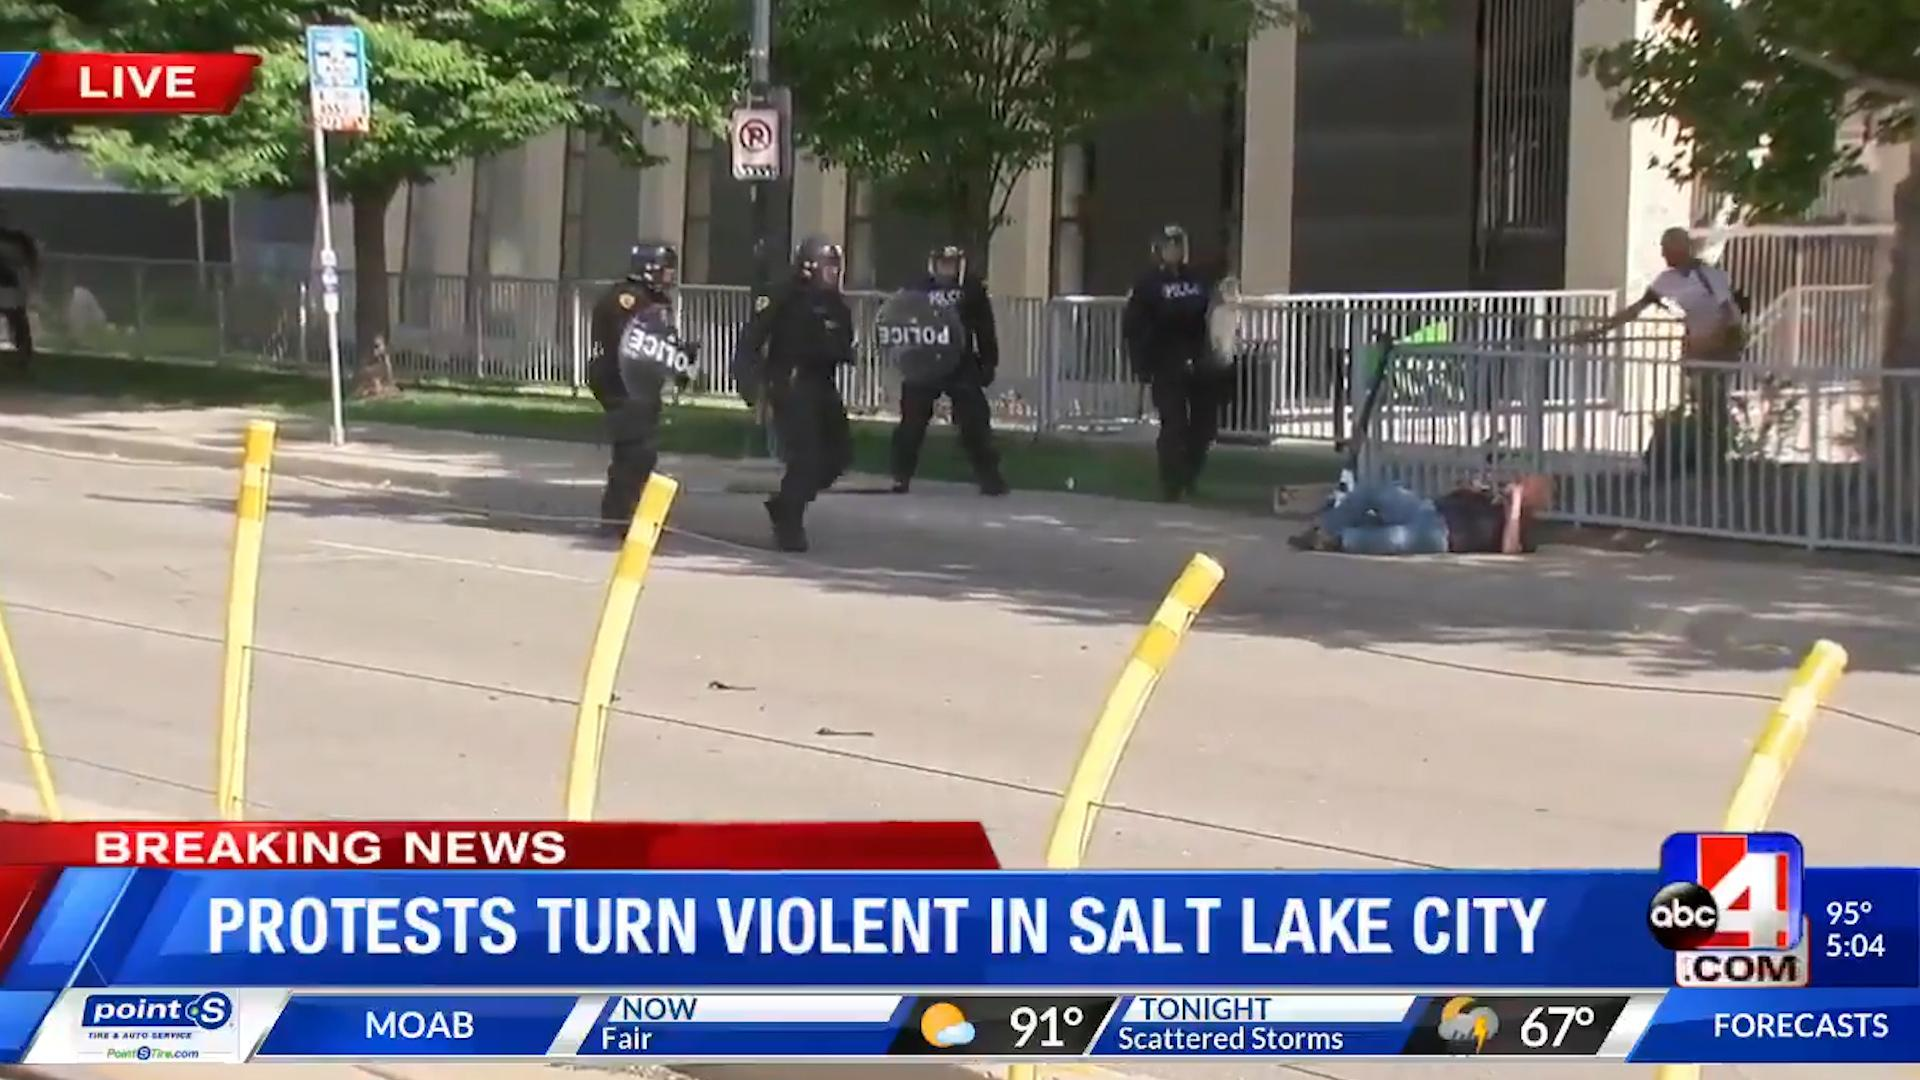 George Floyd protests: Salt Lake City police push elderly man with cane to ground